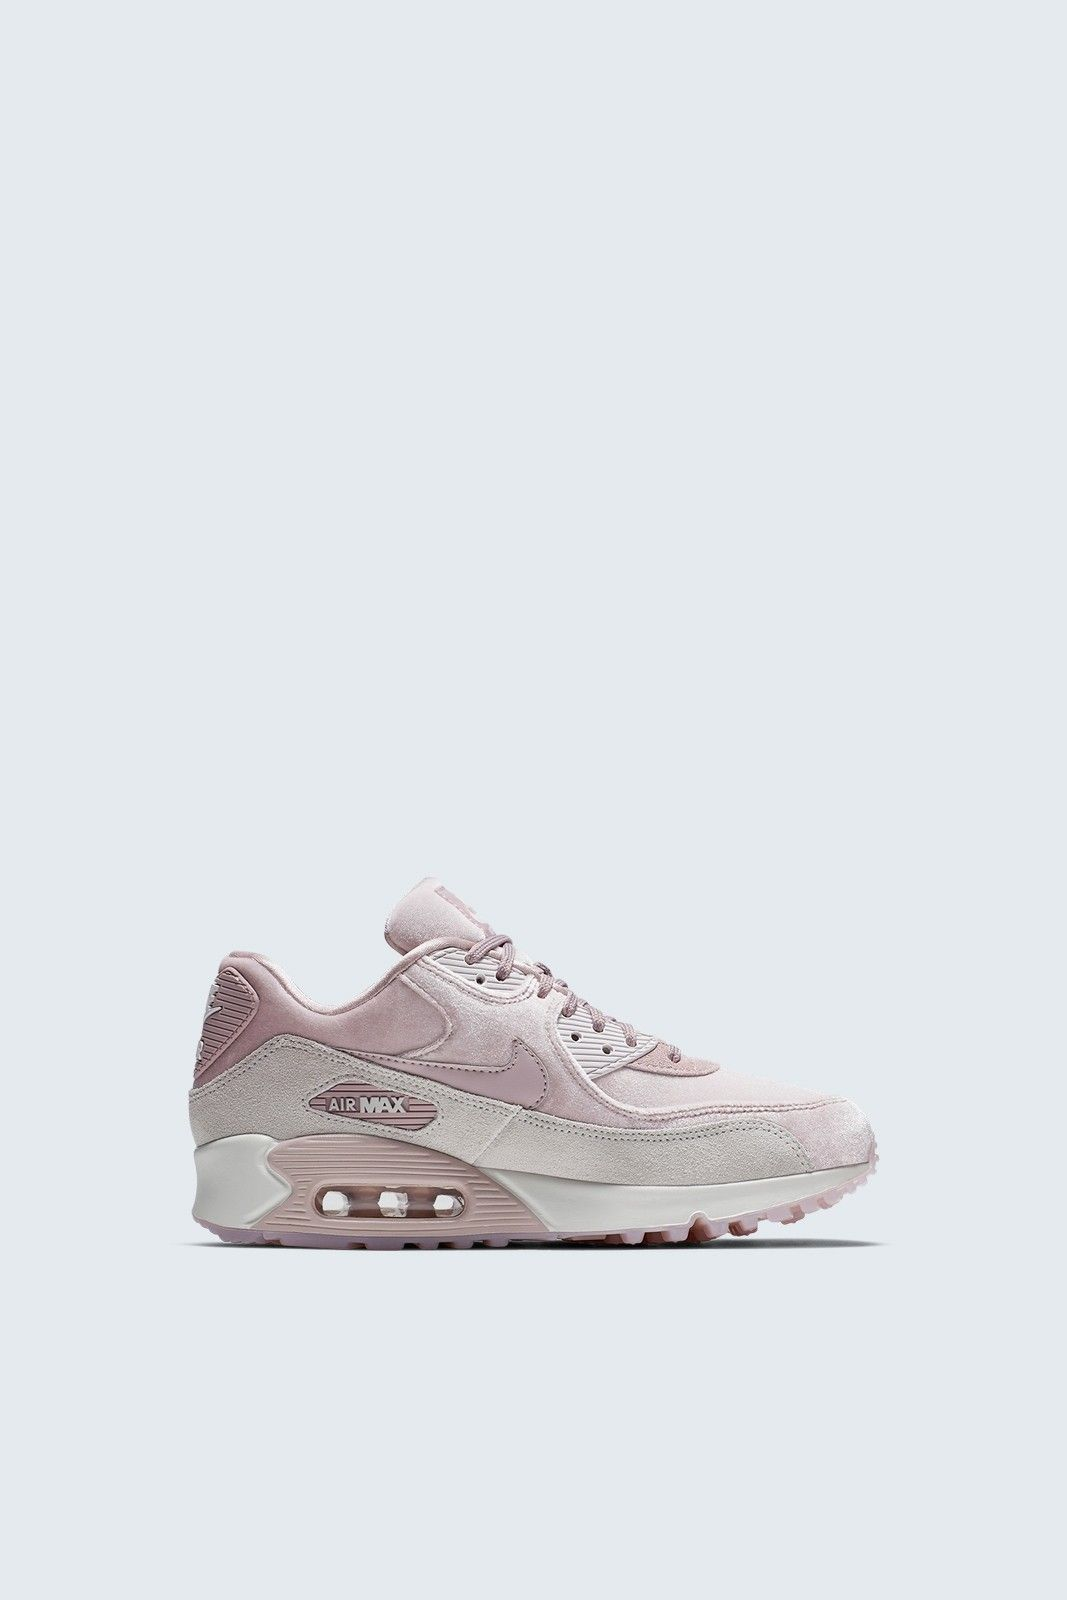 2b49ea0881 AIR MAX 90 LX | Sneakers for a fabulous life! | Air max 90, Nike, Shoes